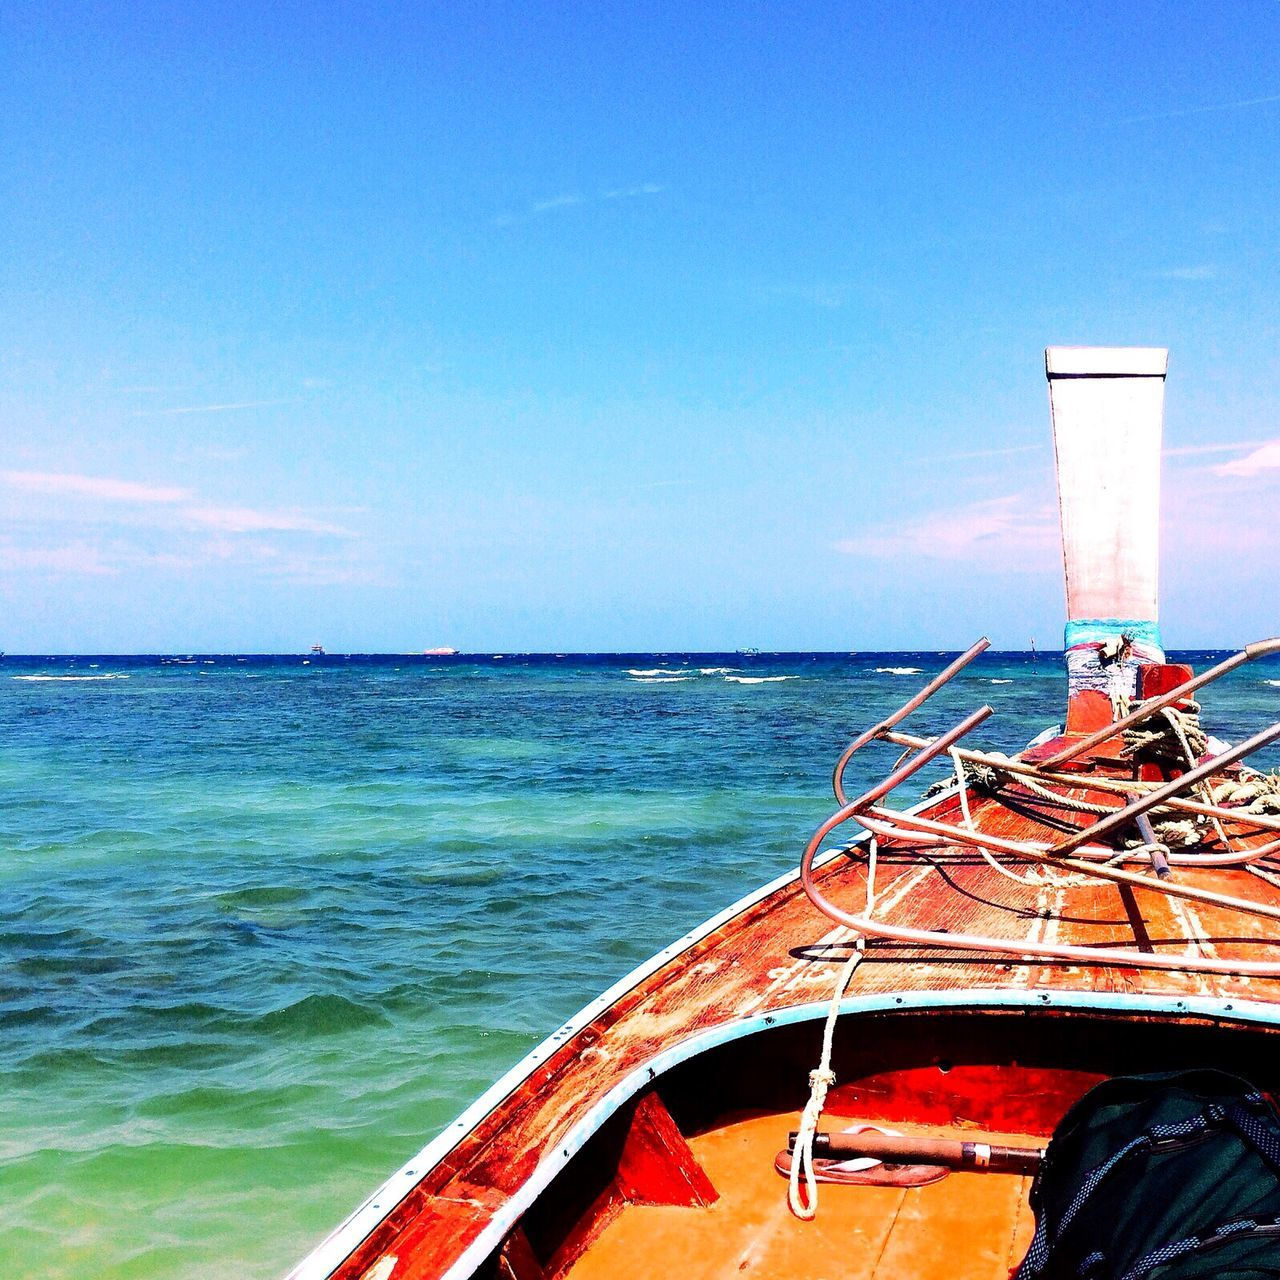 sea, transportation, nautical vessel, day, water, no people, mode of transport, outdoors, horizon over water, nature, blue, sky, beauty in nature